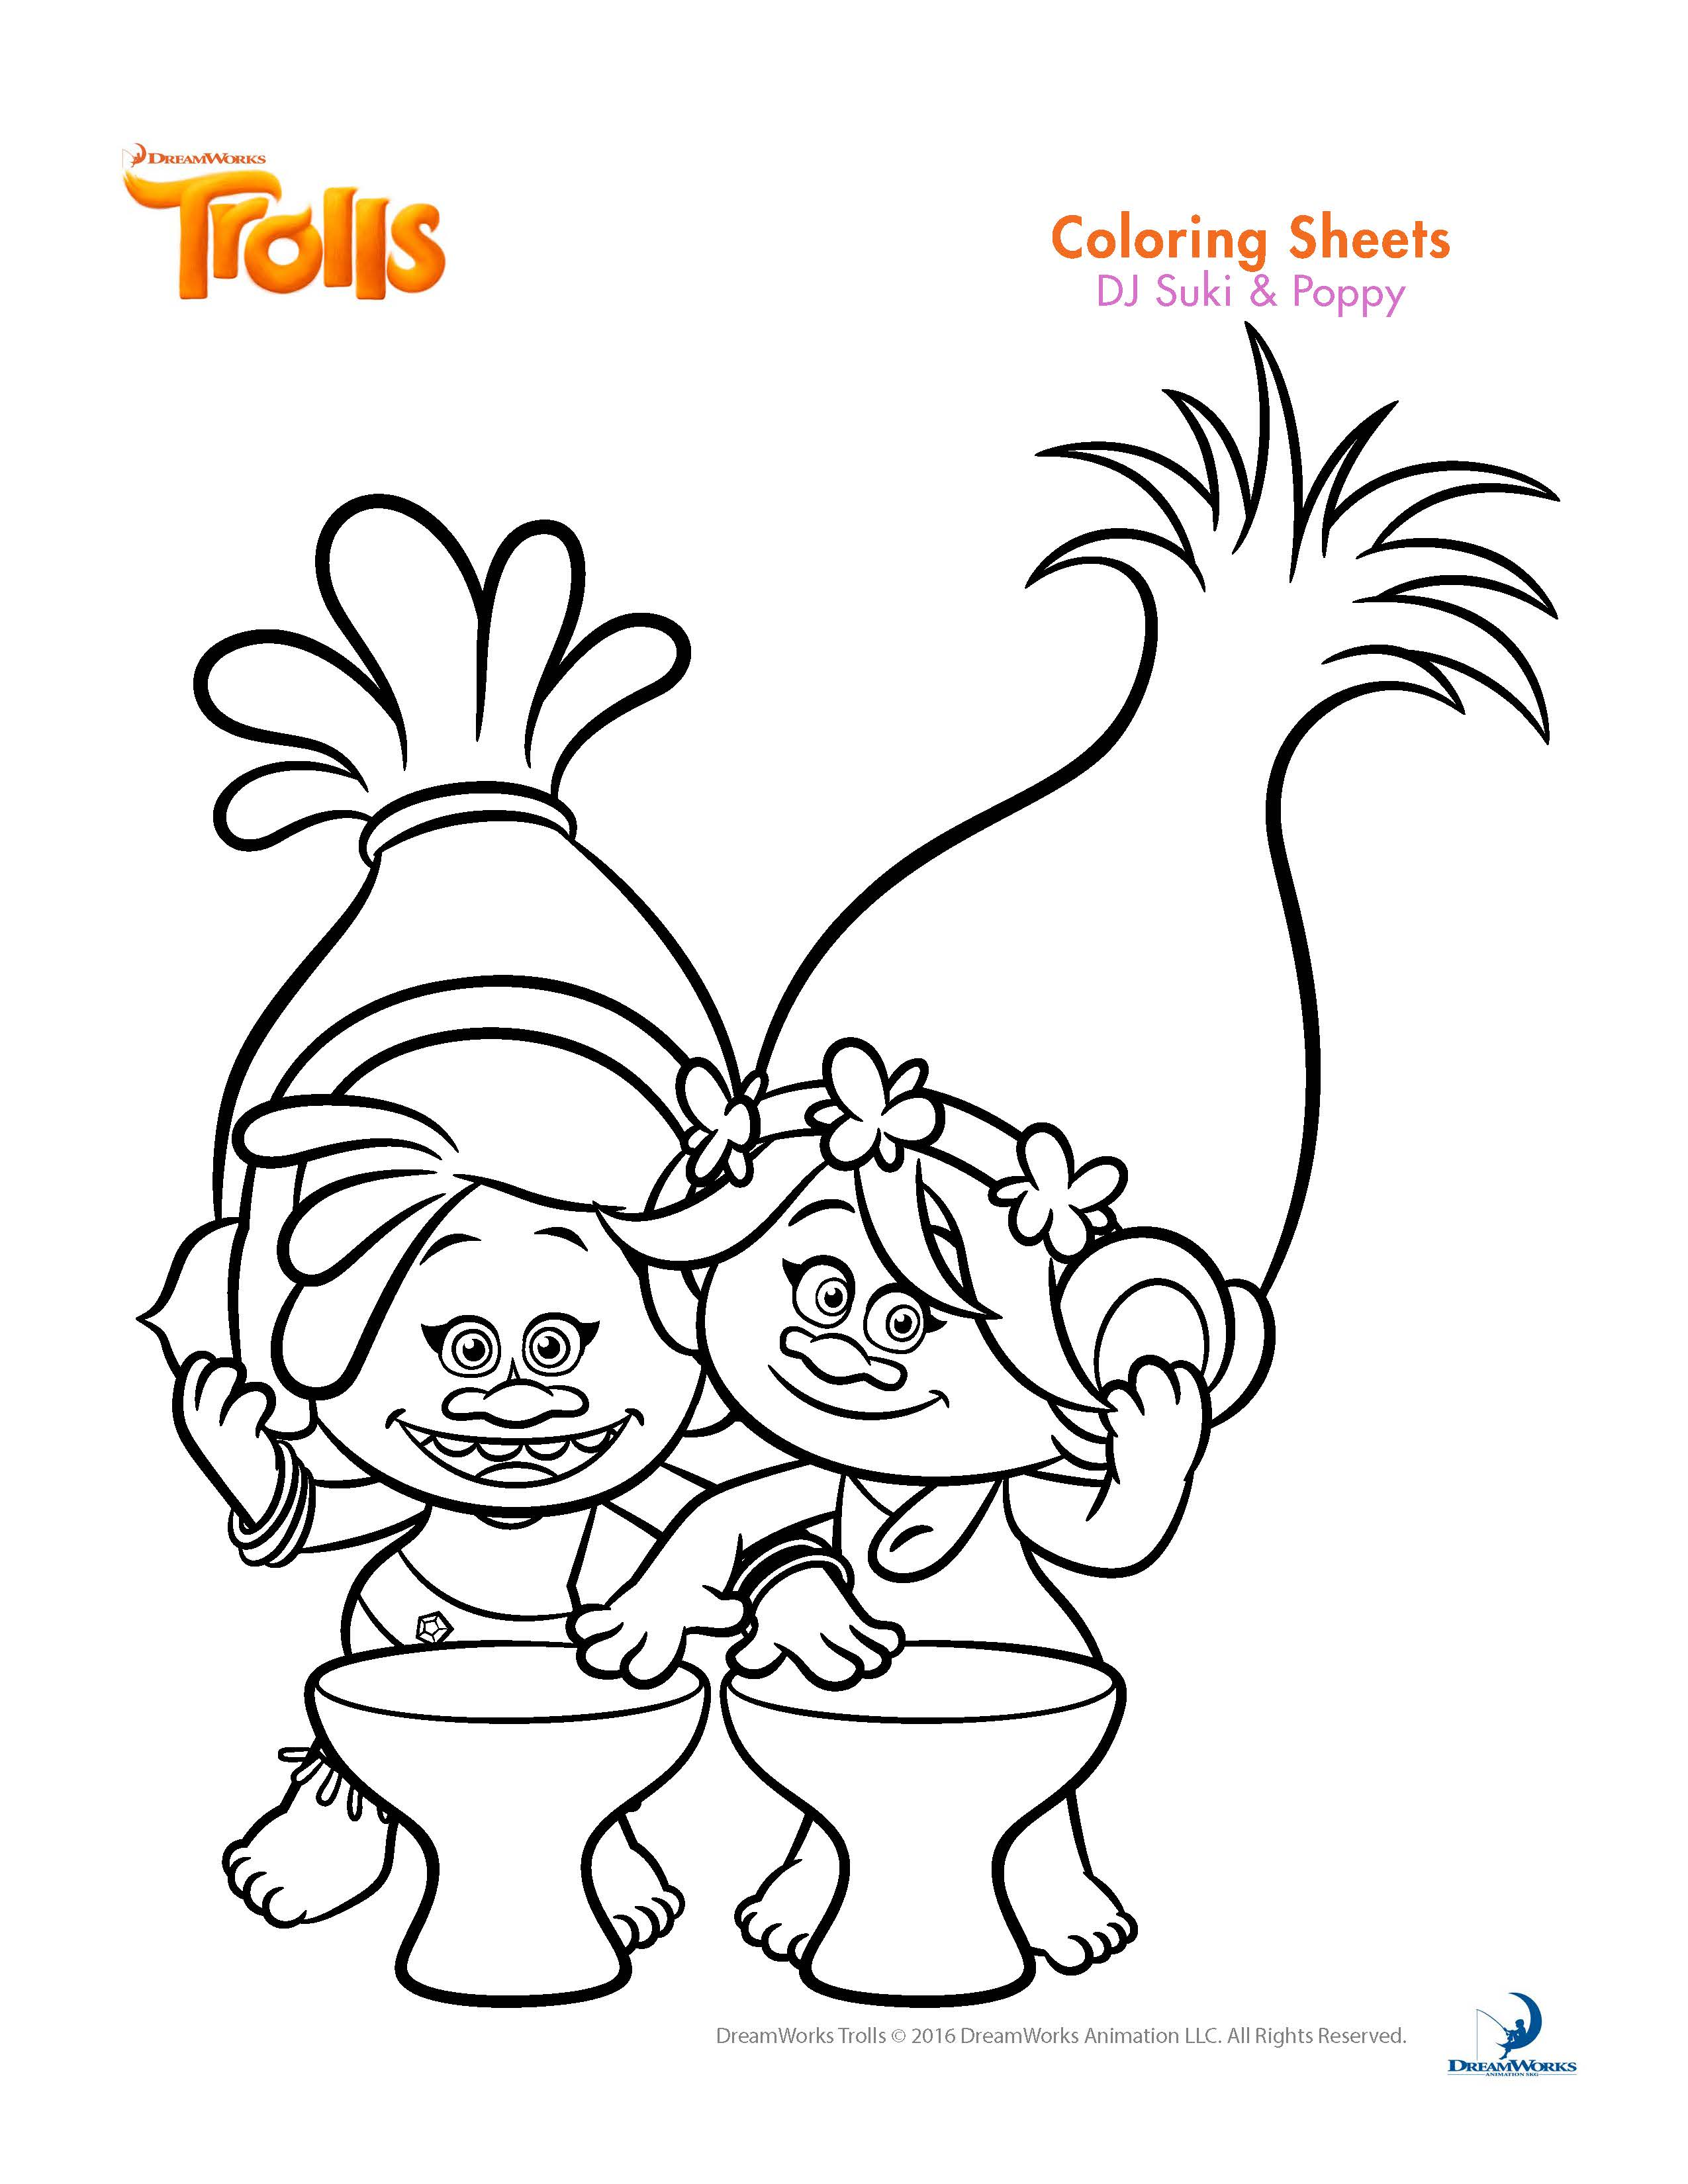 Printable coloring pages trolls - Dreamwork Trolls Coloring Pages